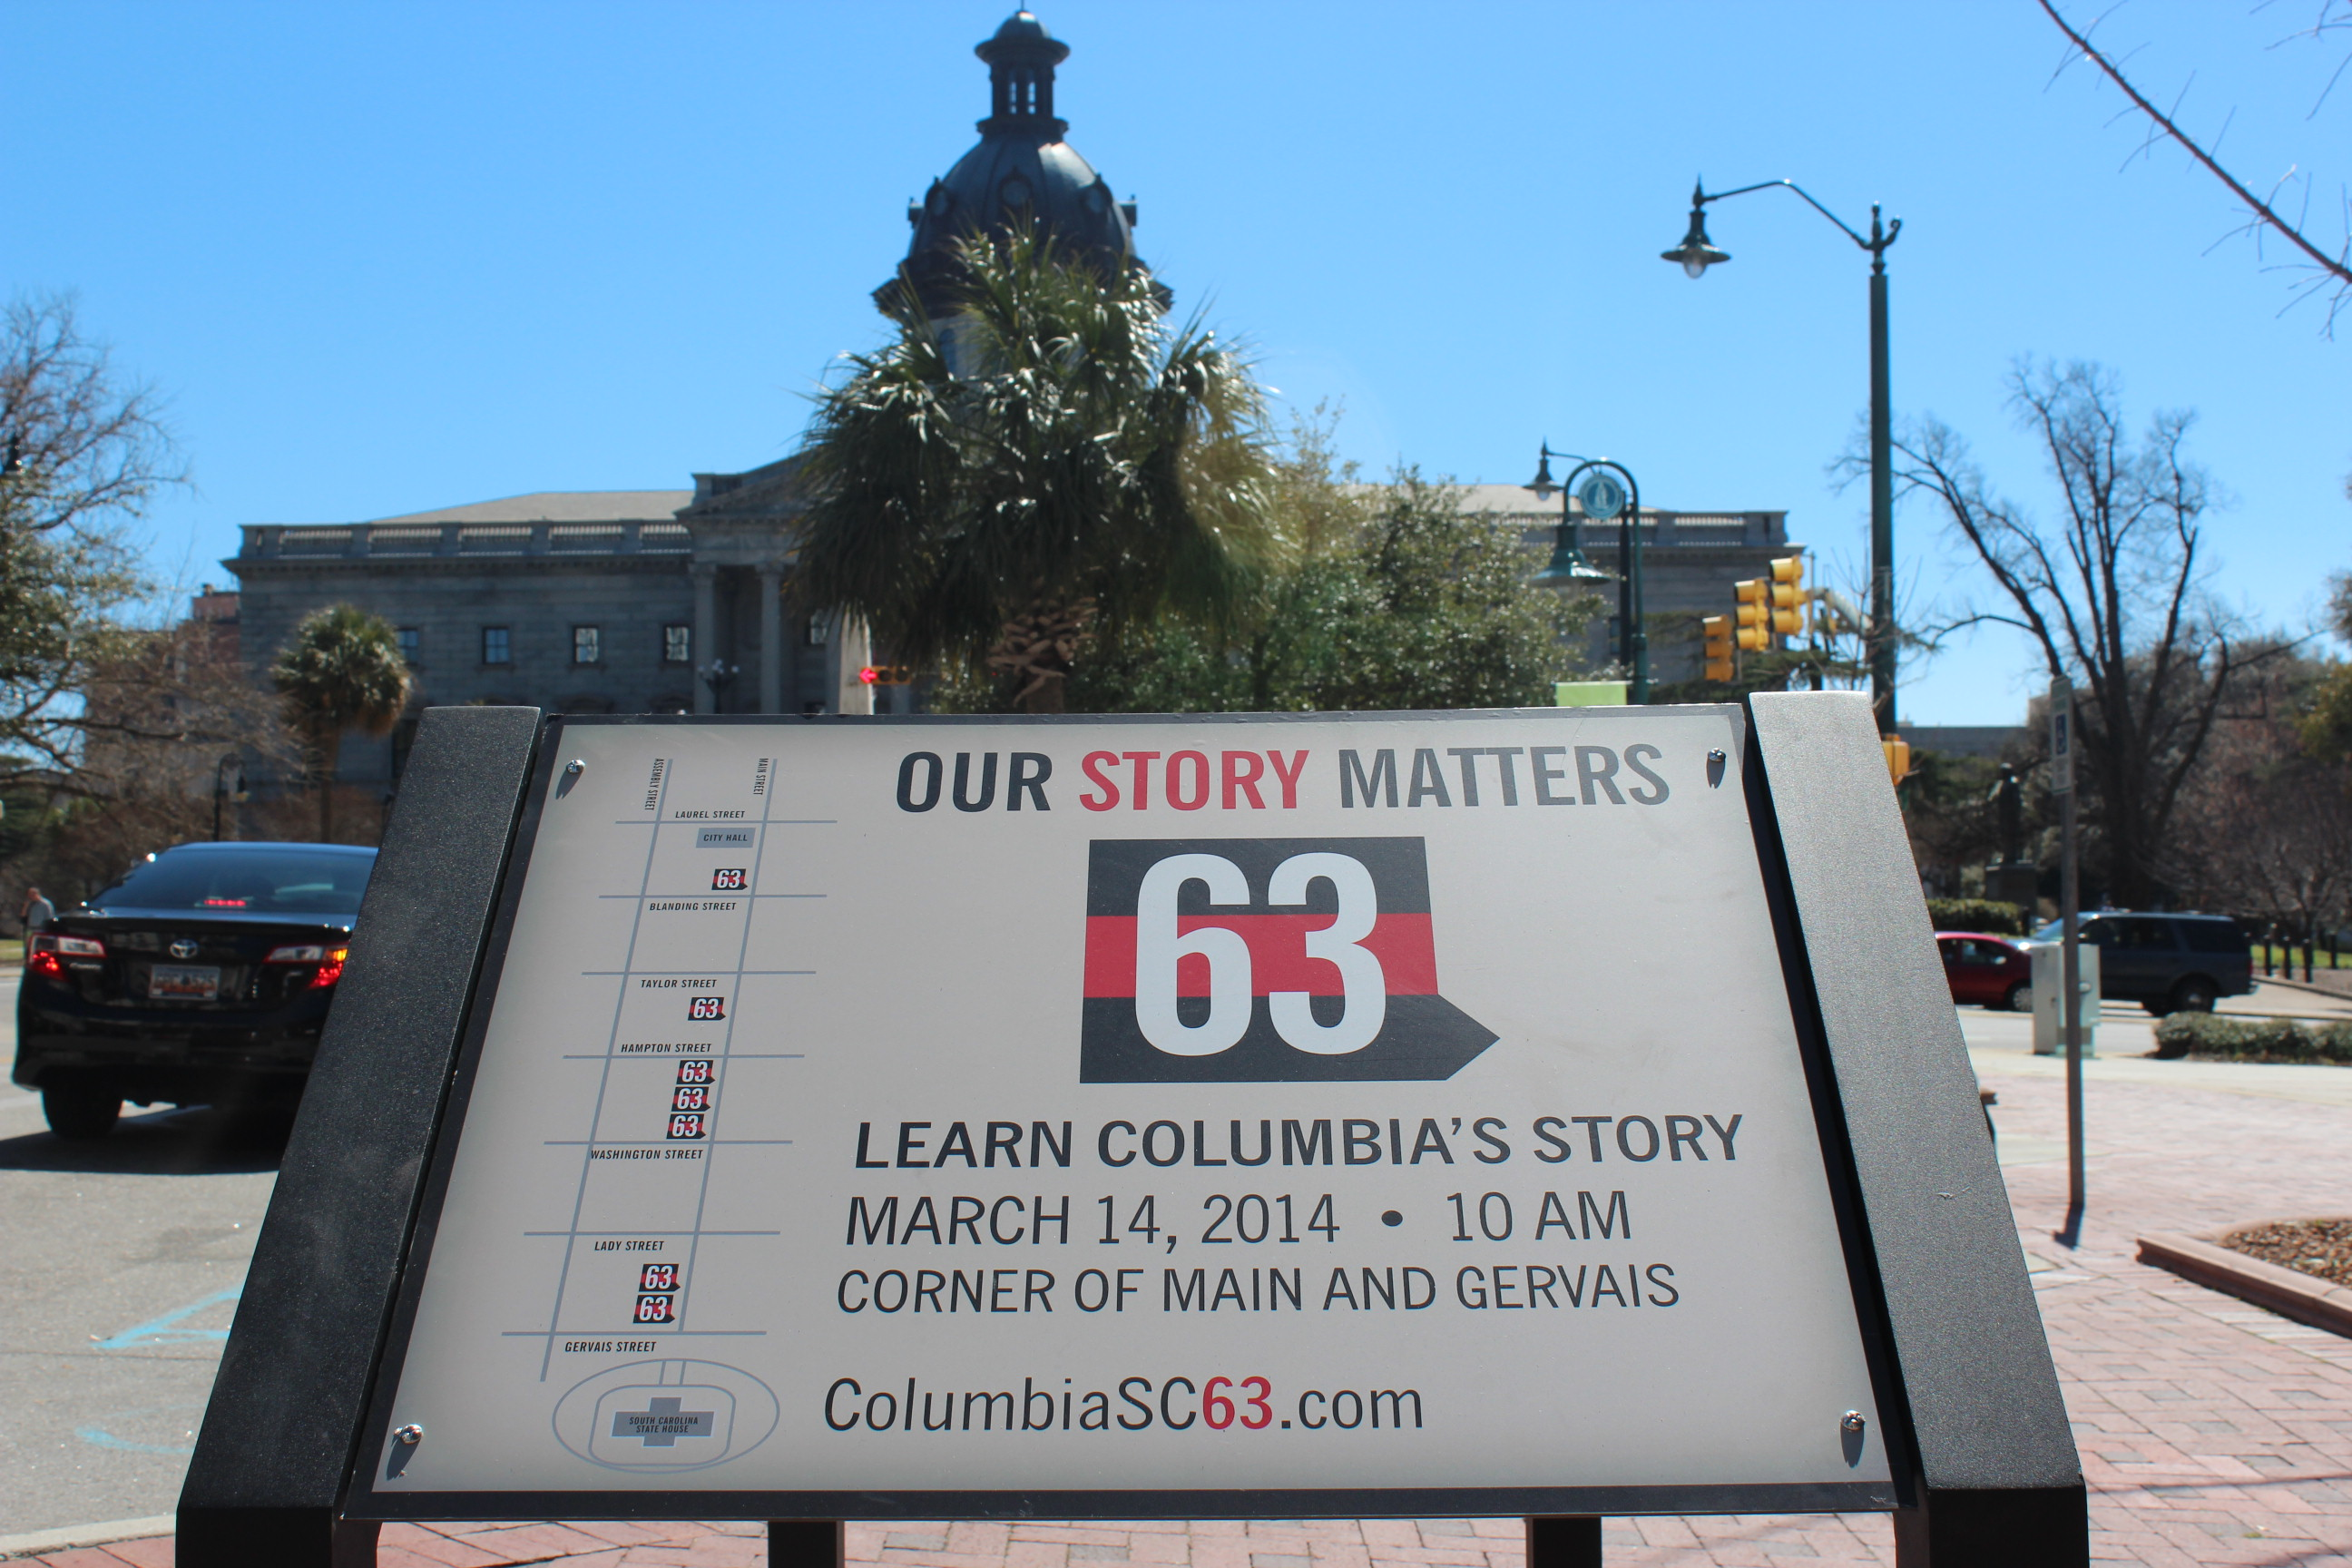 Columbia SC 63 Wayside Signs mark important points along Main Street in Columbia, SC's Civil Rights history